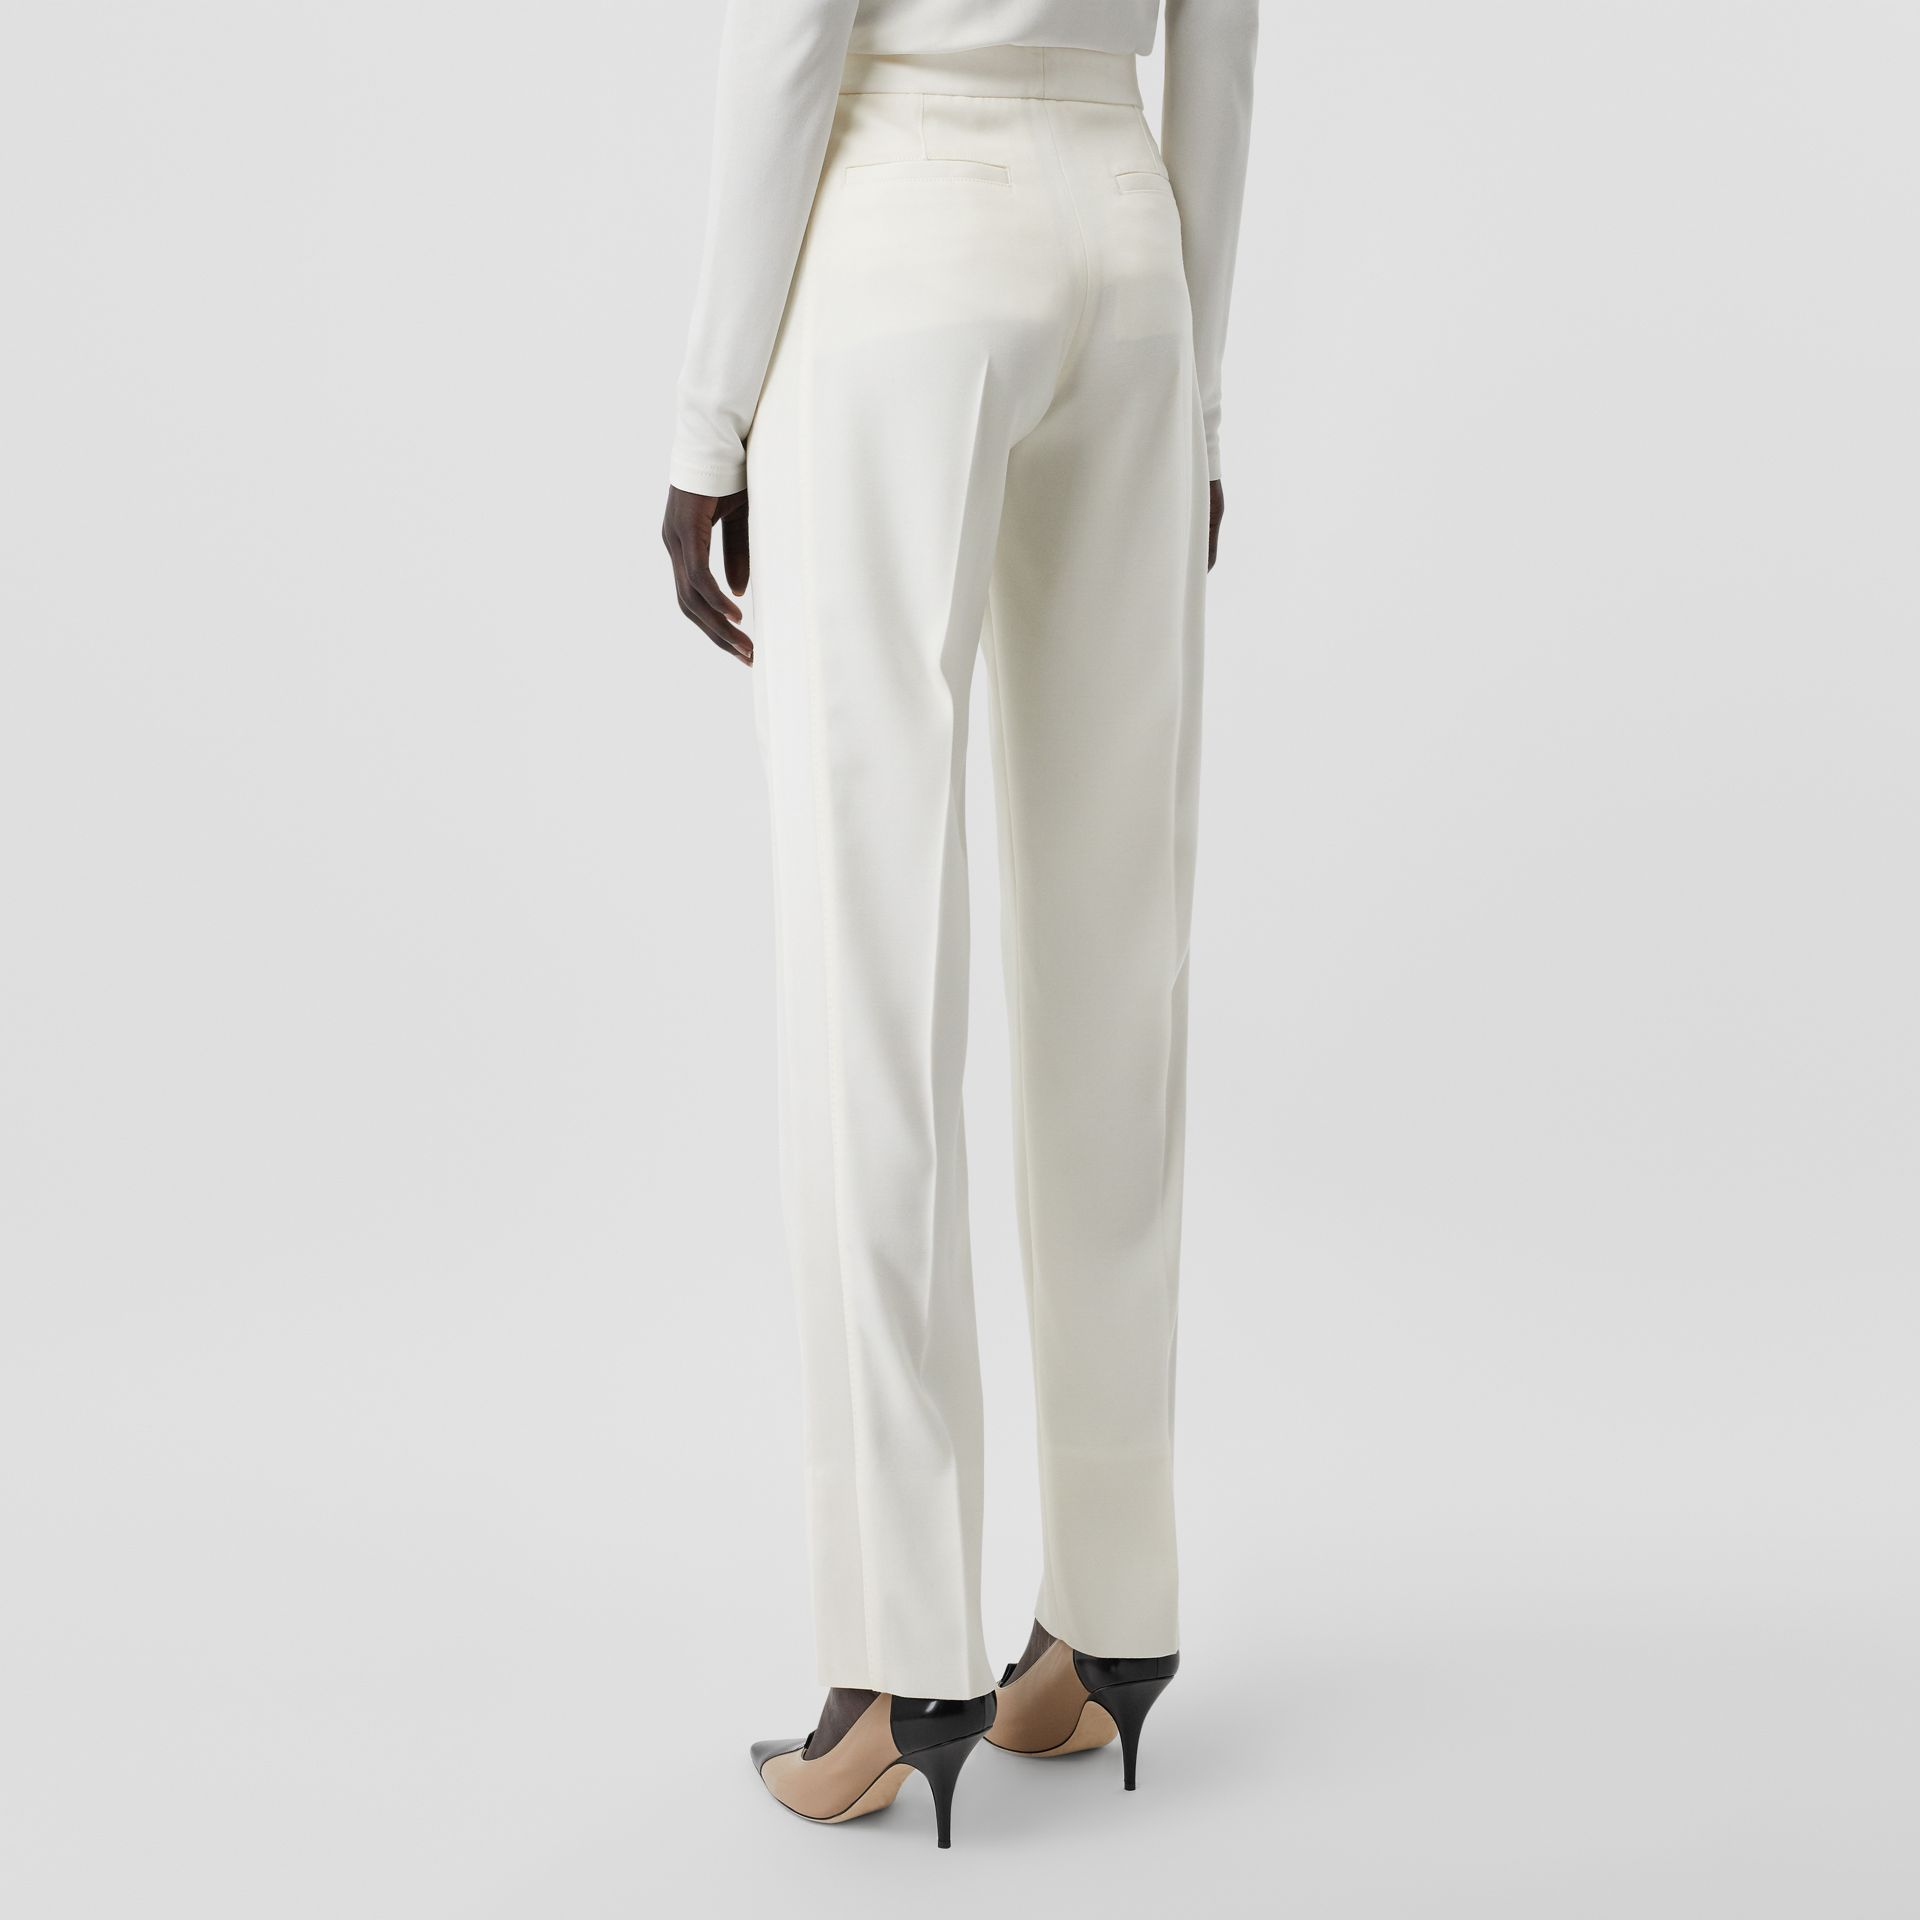 Satin Stripe Detail Wool Tailored Trousers in Natural White - Women | Burberry - gallery image 2